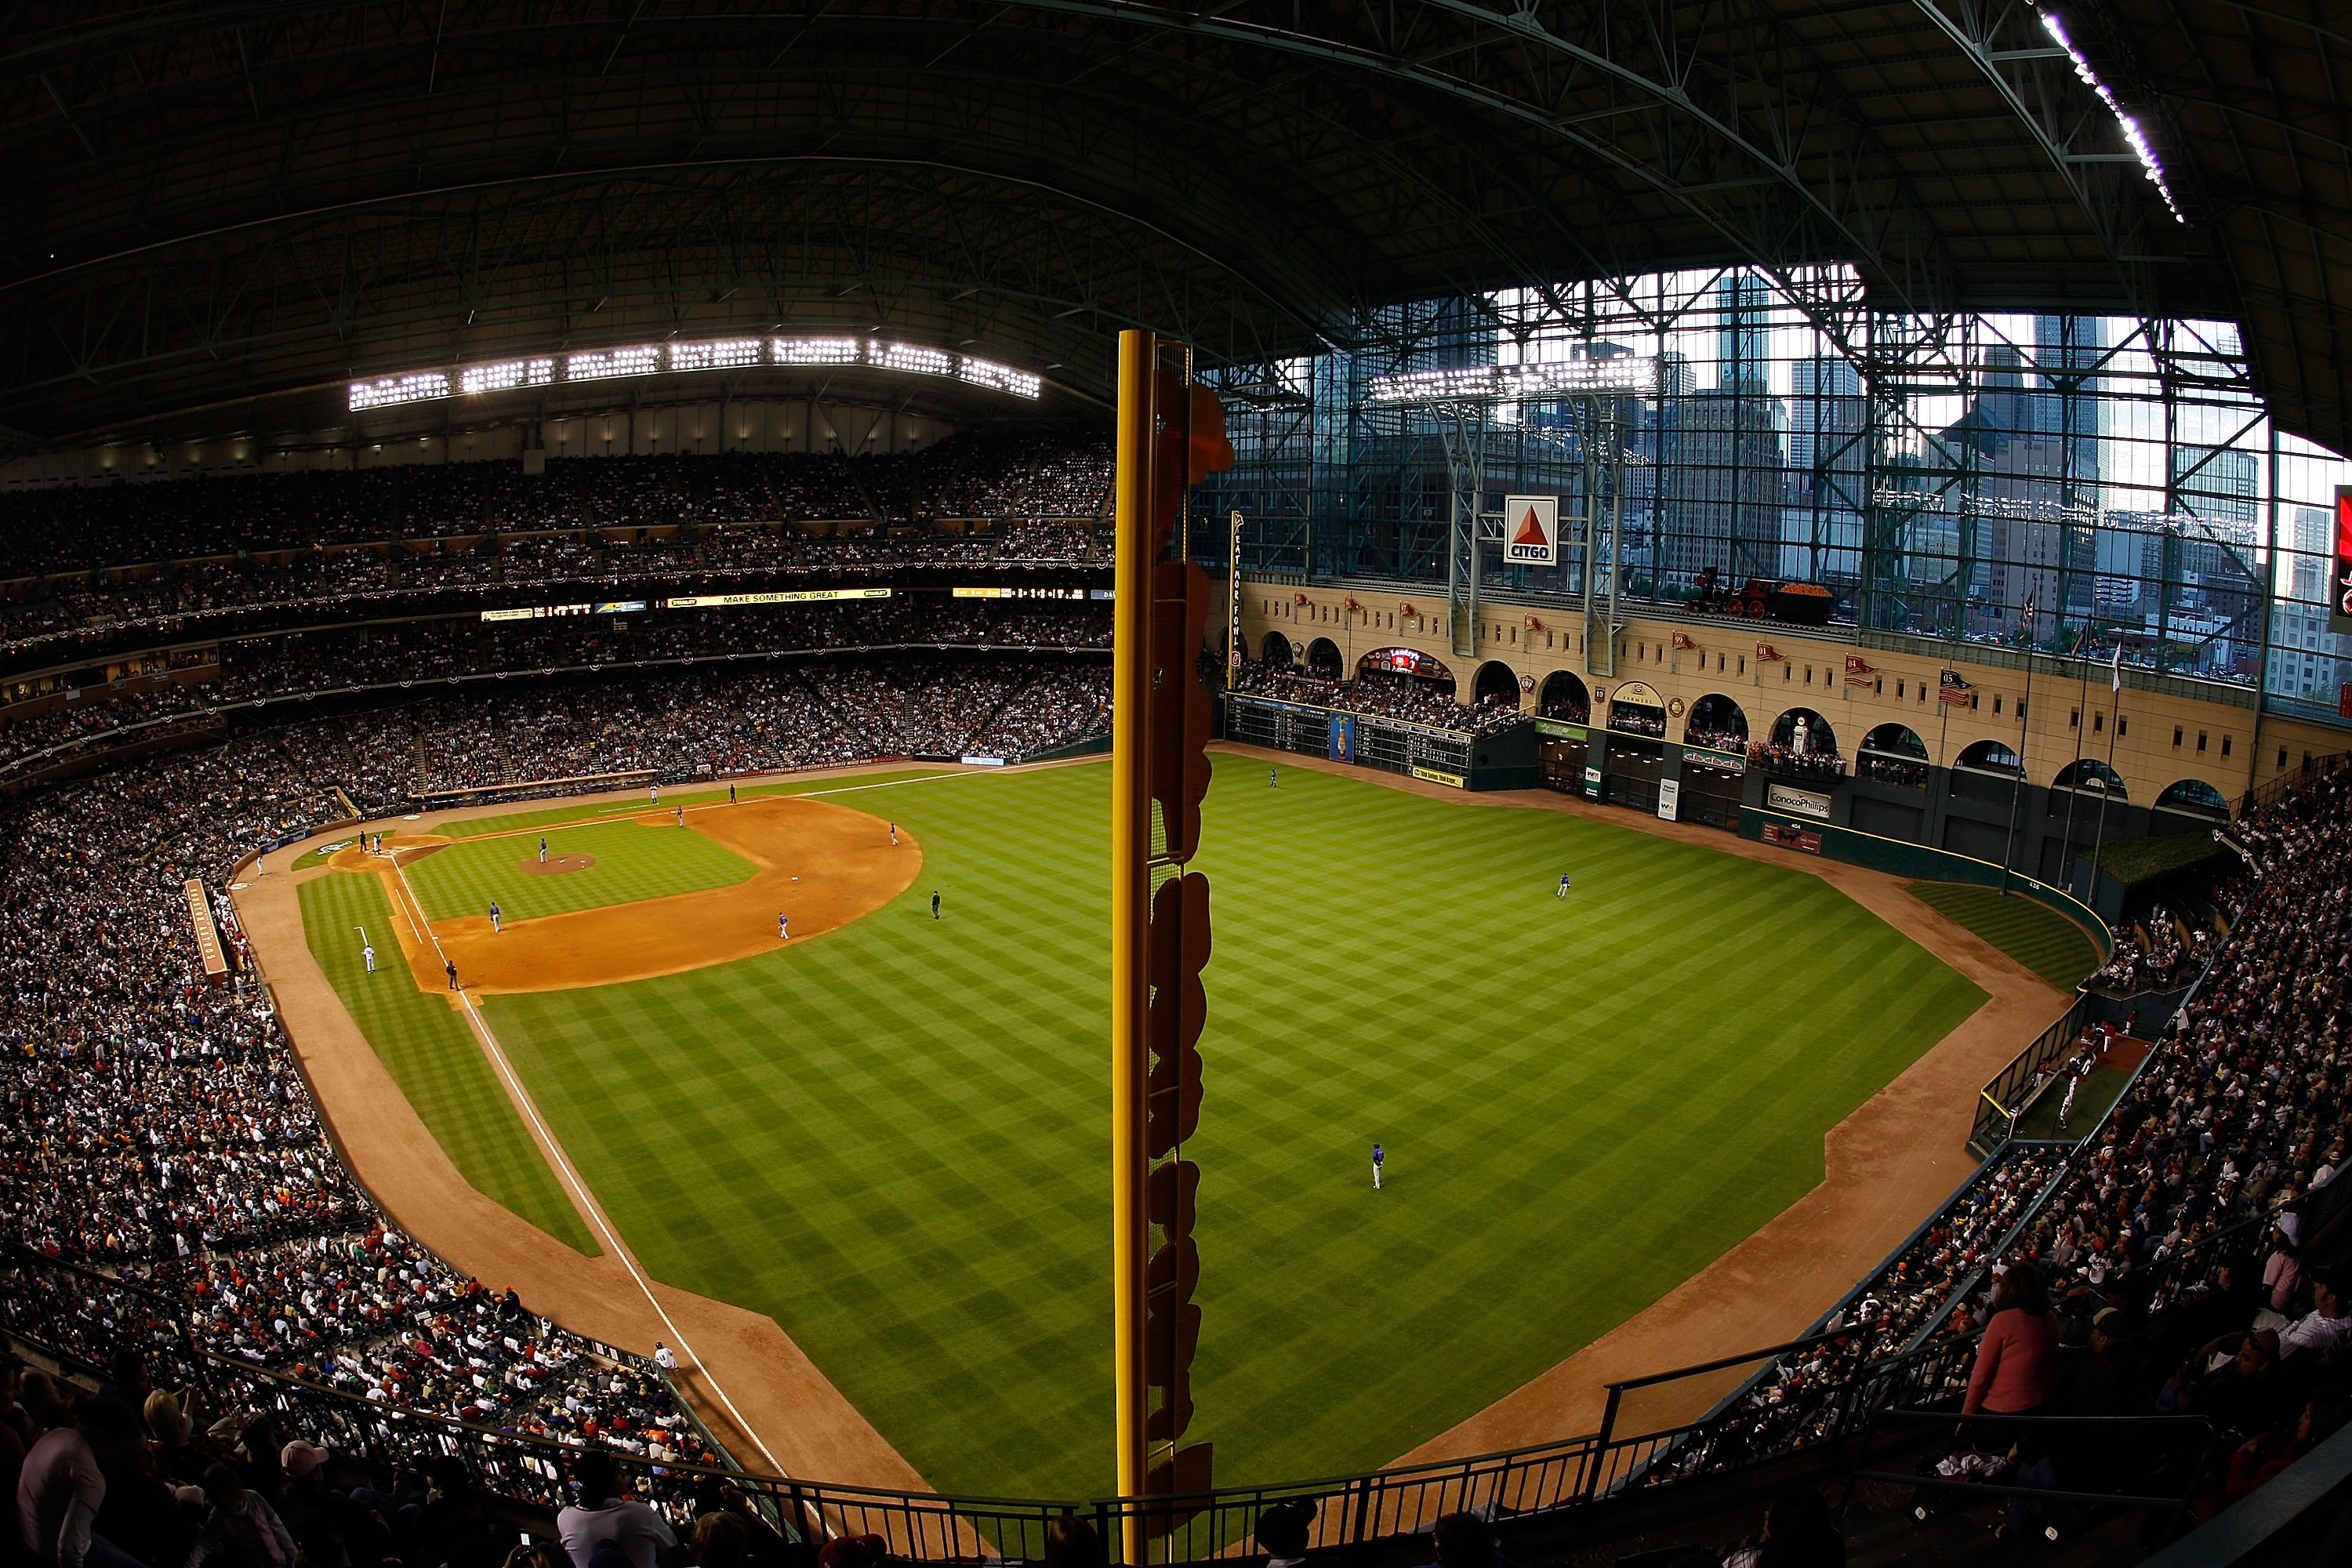 HOUSTON - APRIL 06:  Fans watch the Opening Day game against the Chicago Cubs and the Houston Astros on April 6, 2009 at Minute Maid Park in Houston, Texas.  (Photo by Chris Graythen/Getty Images)